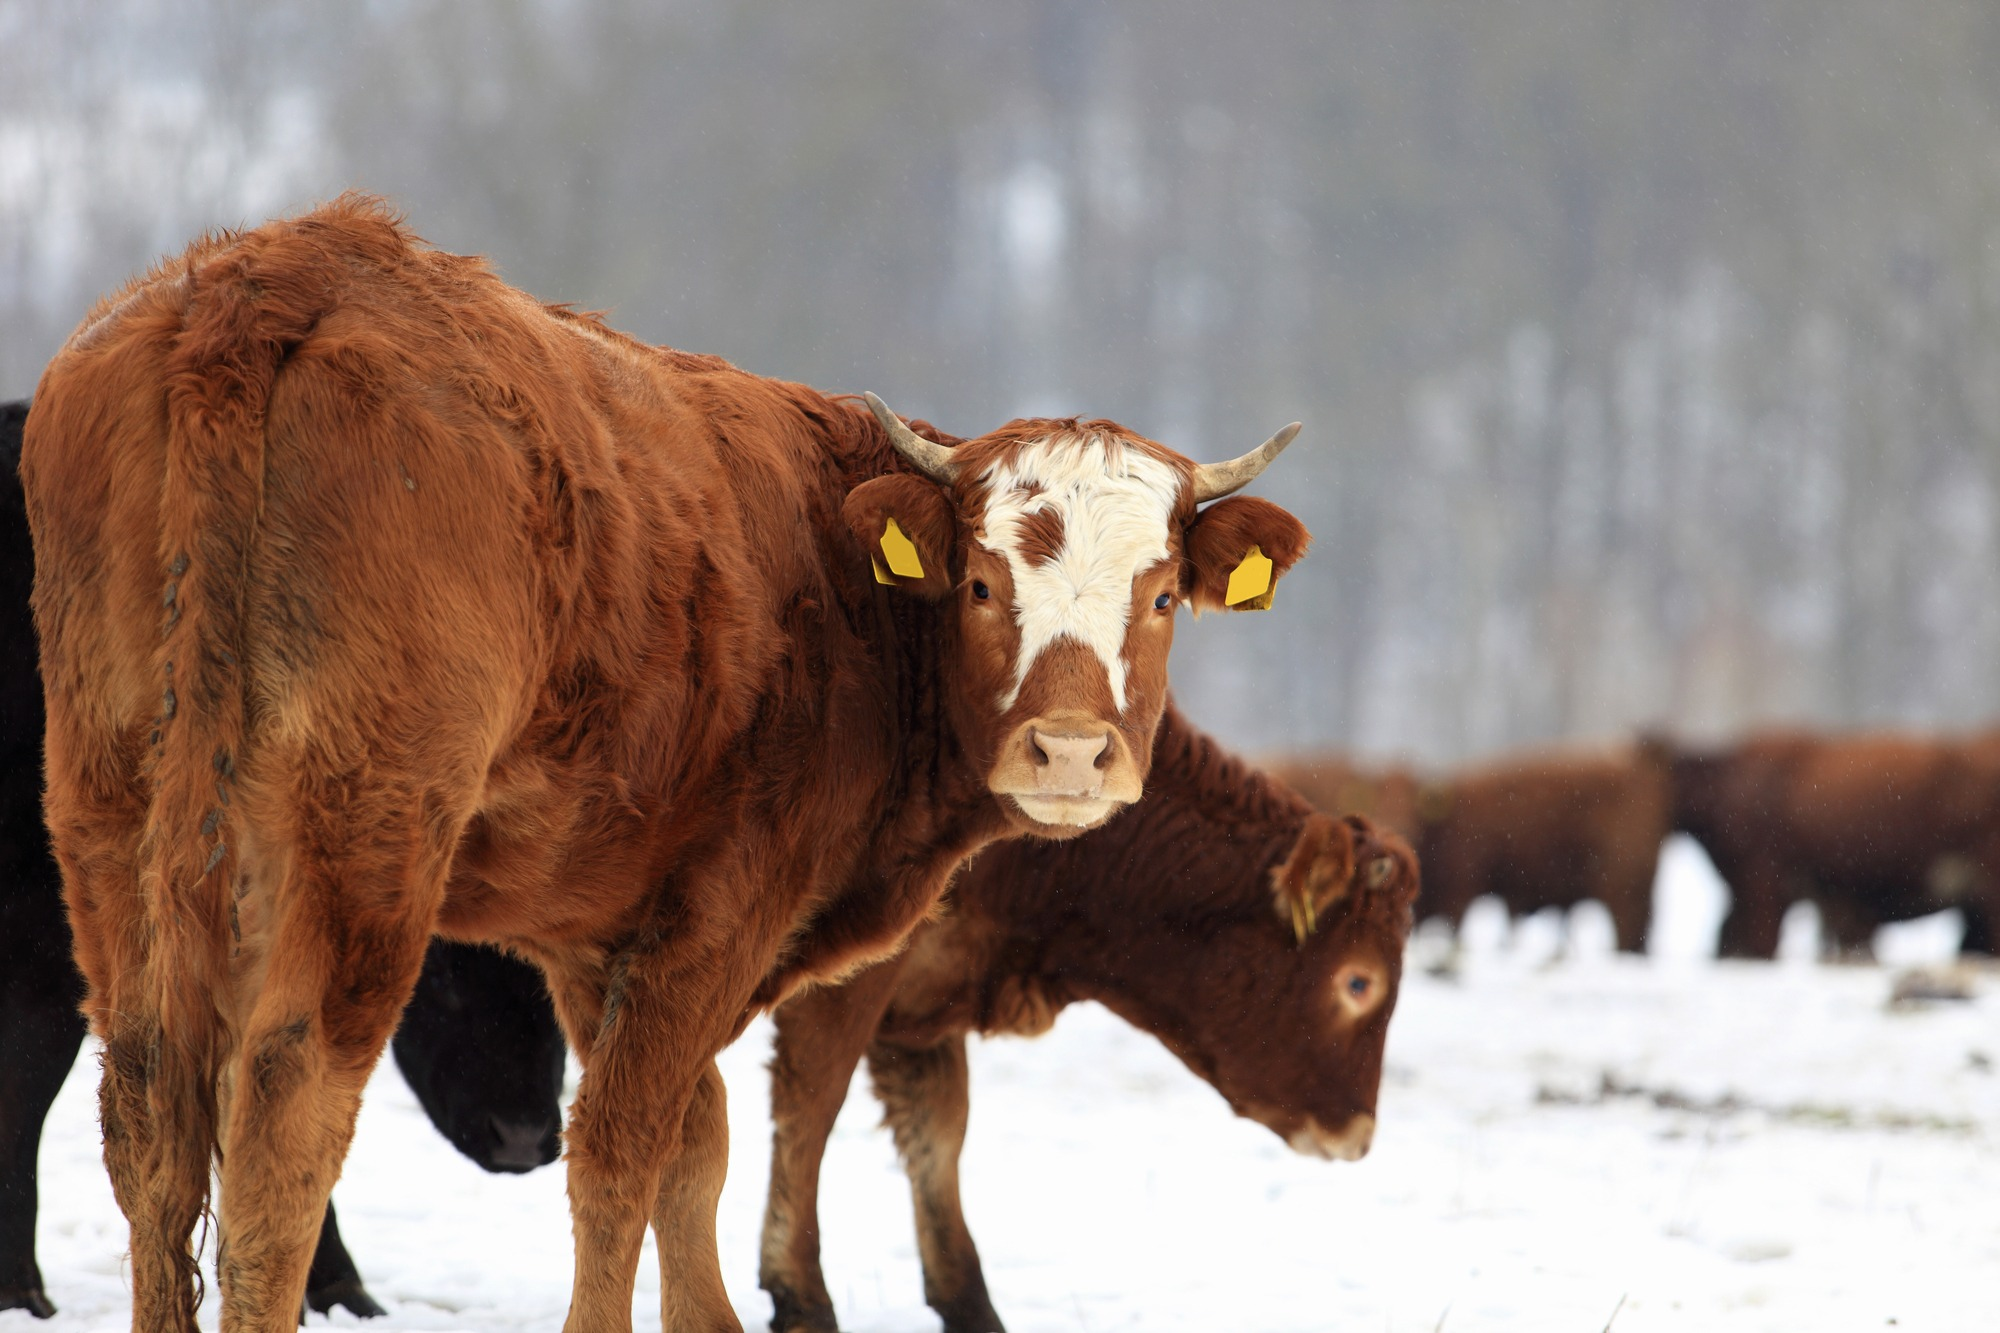 Cows and snow, photo by: Diktatoor@Depositphotos